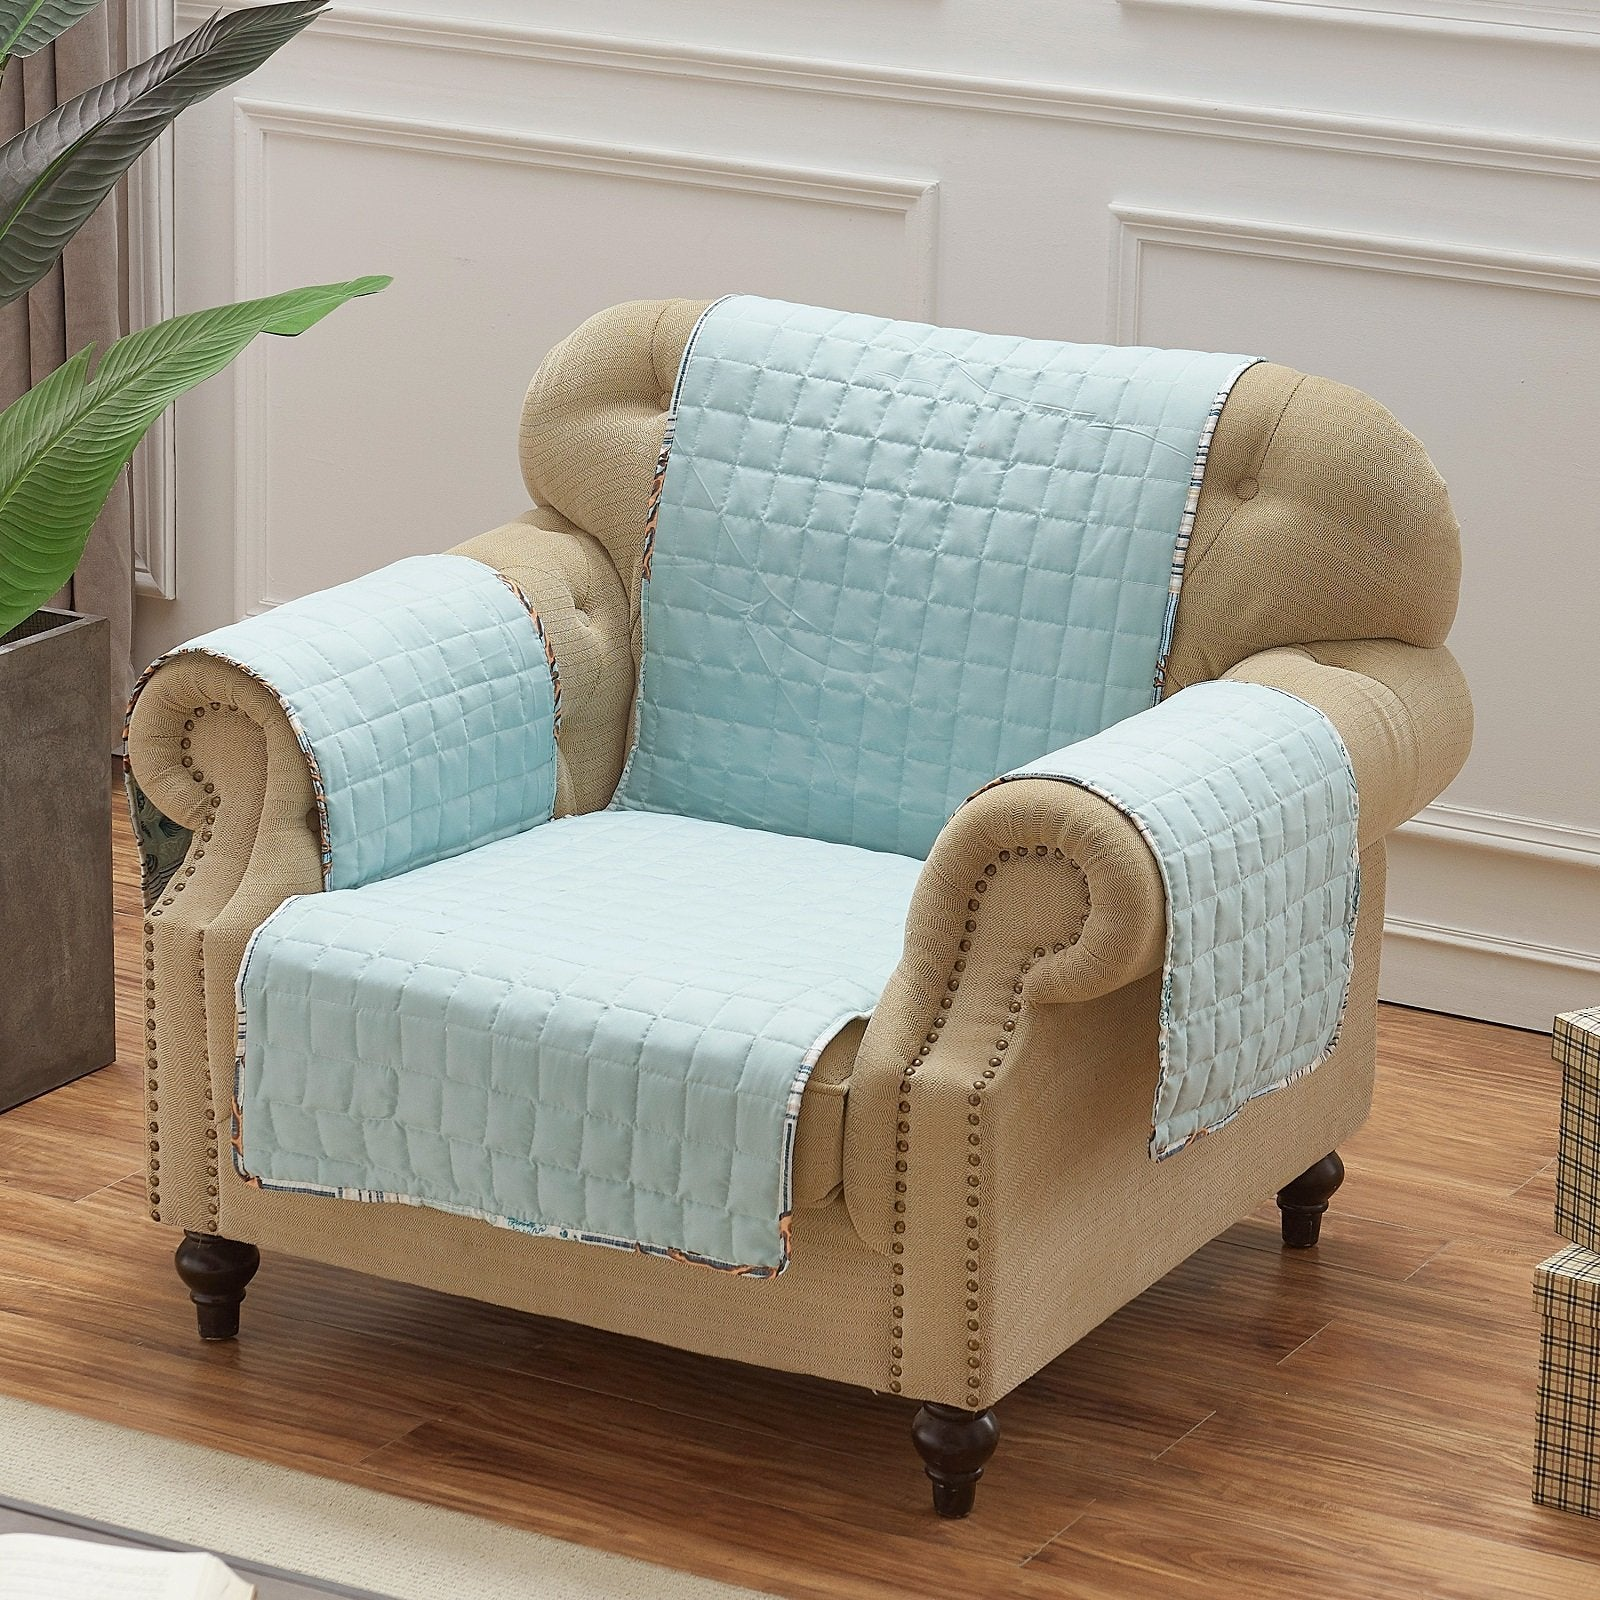 Key West Seafoam Arm Chair Protector [Luxury comforter Sets] [by Latest Bedding]